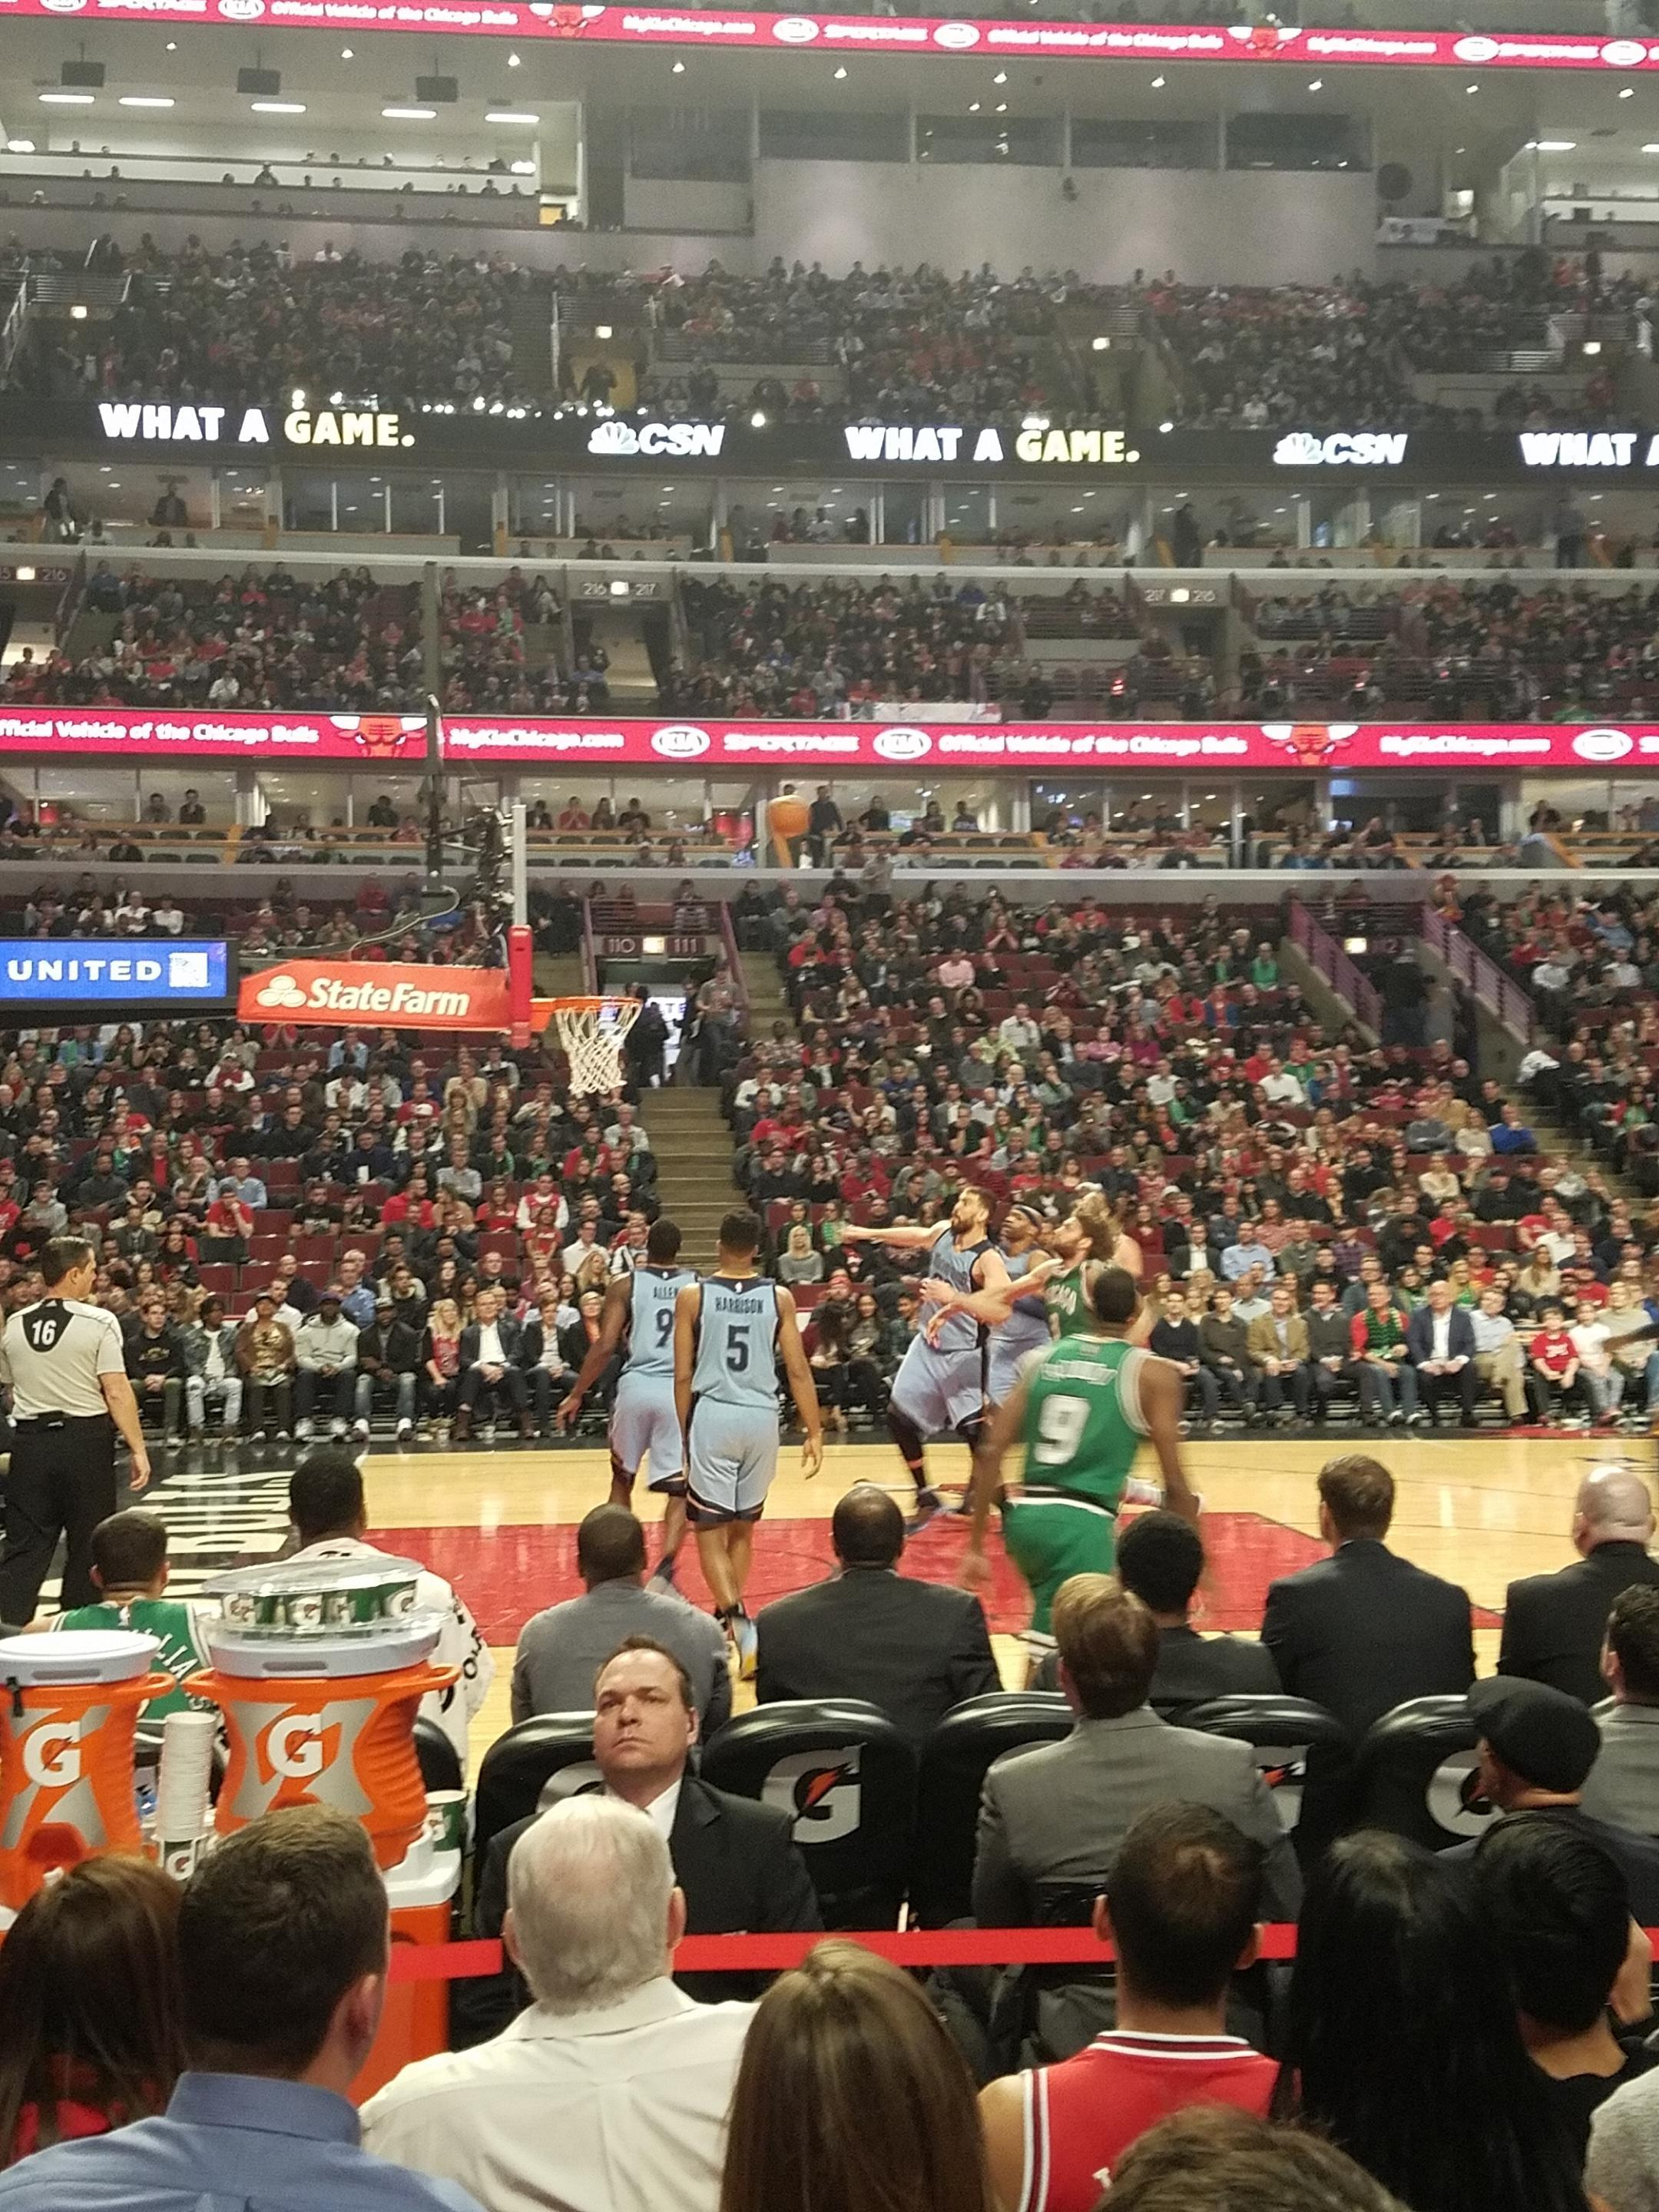 United Center Section 102 Row 3 Seat 4